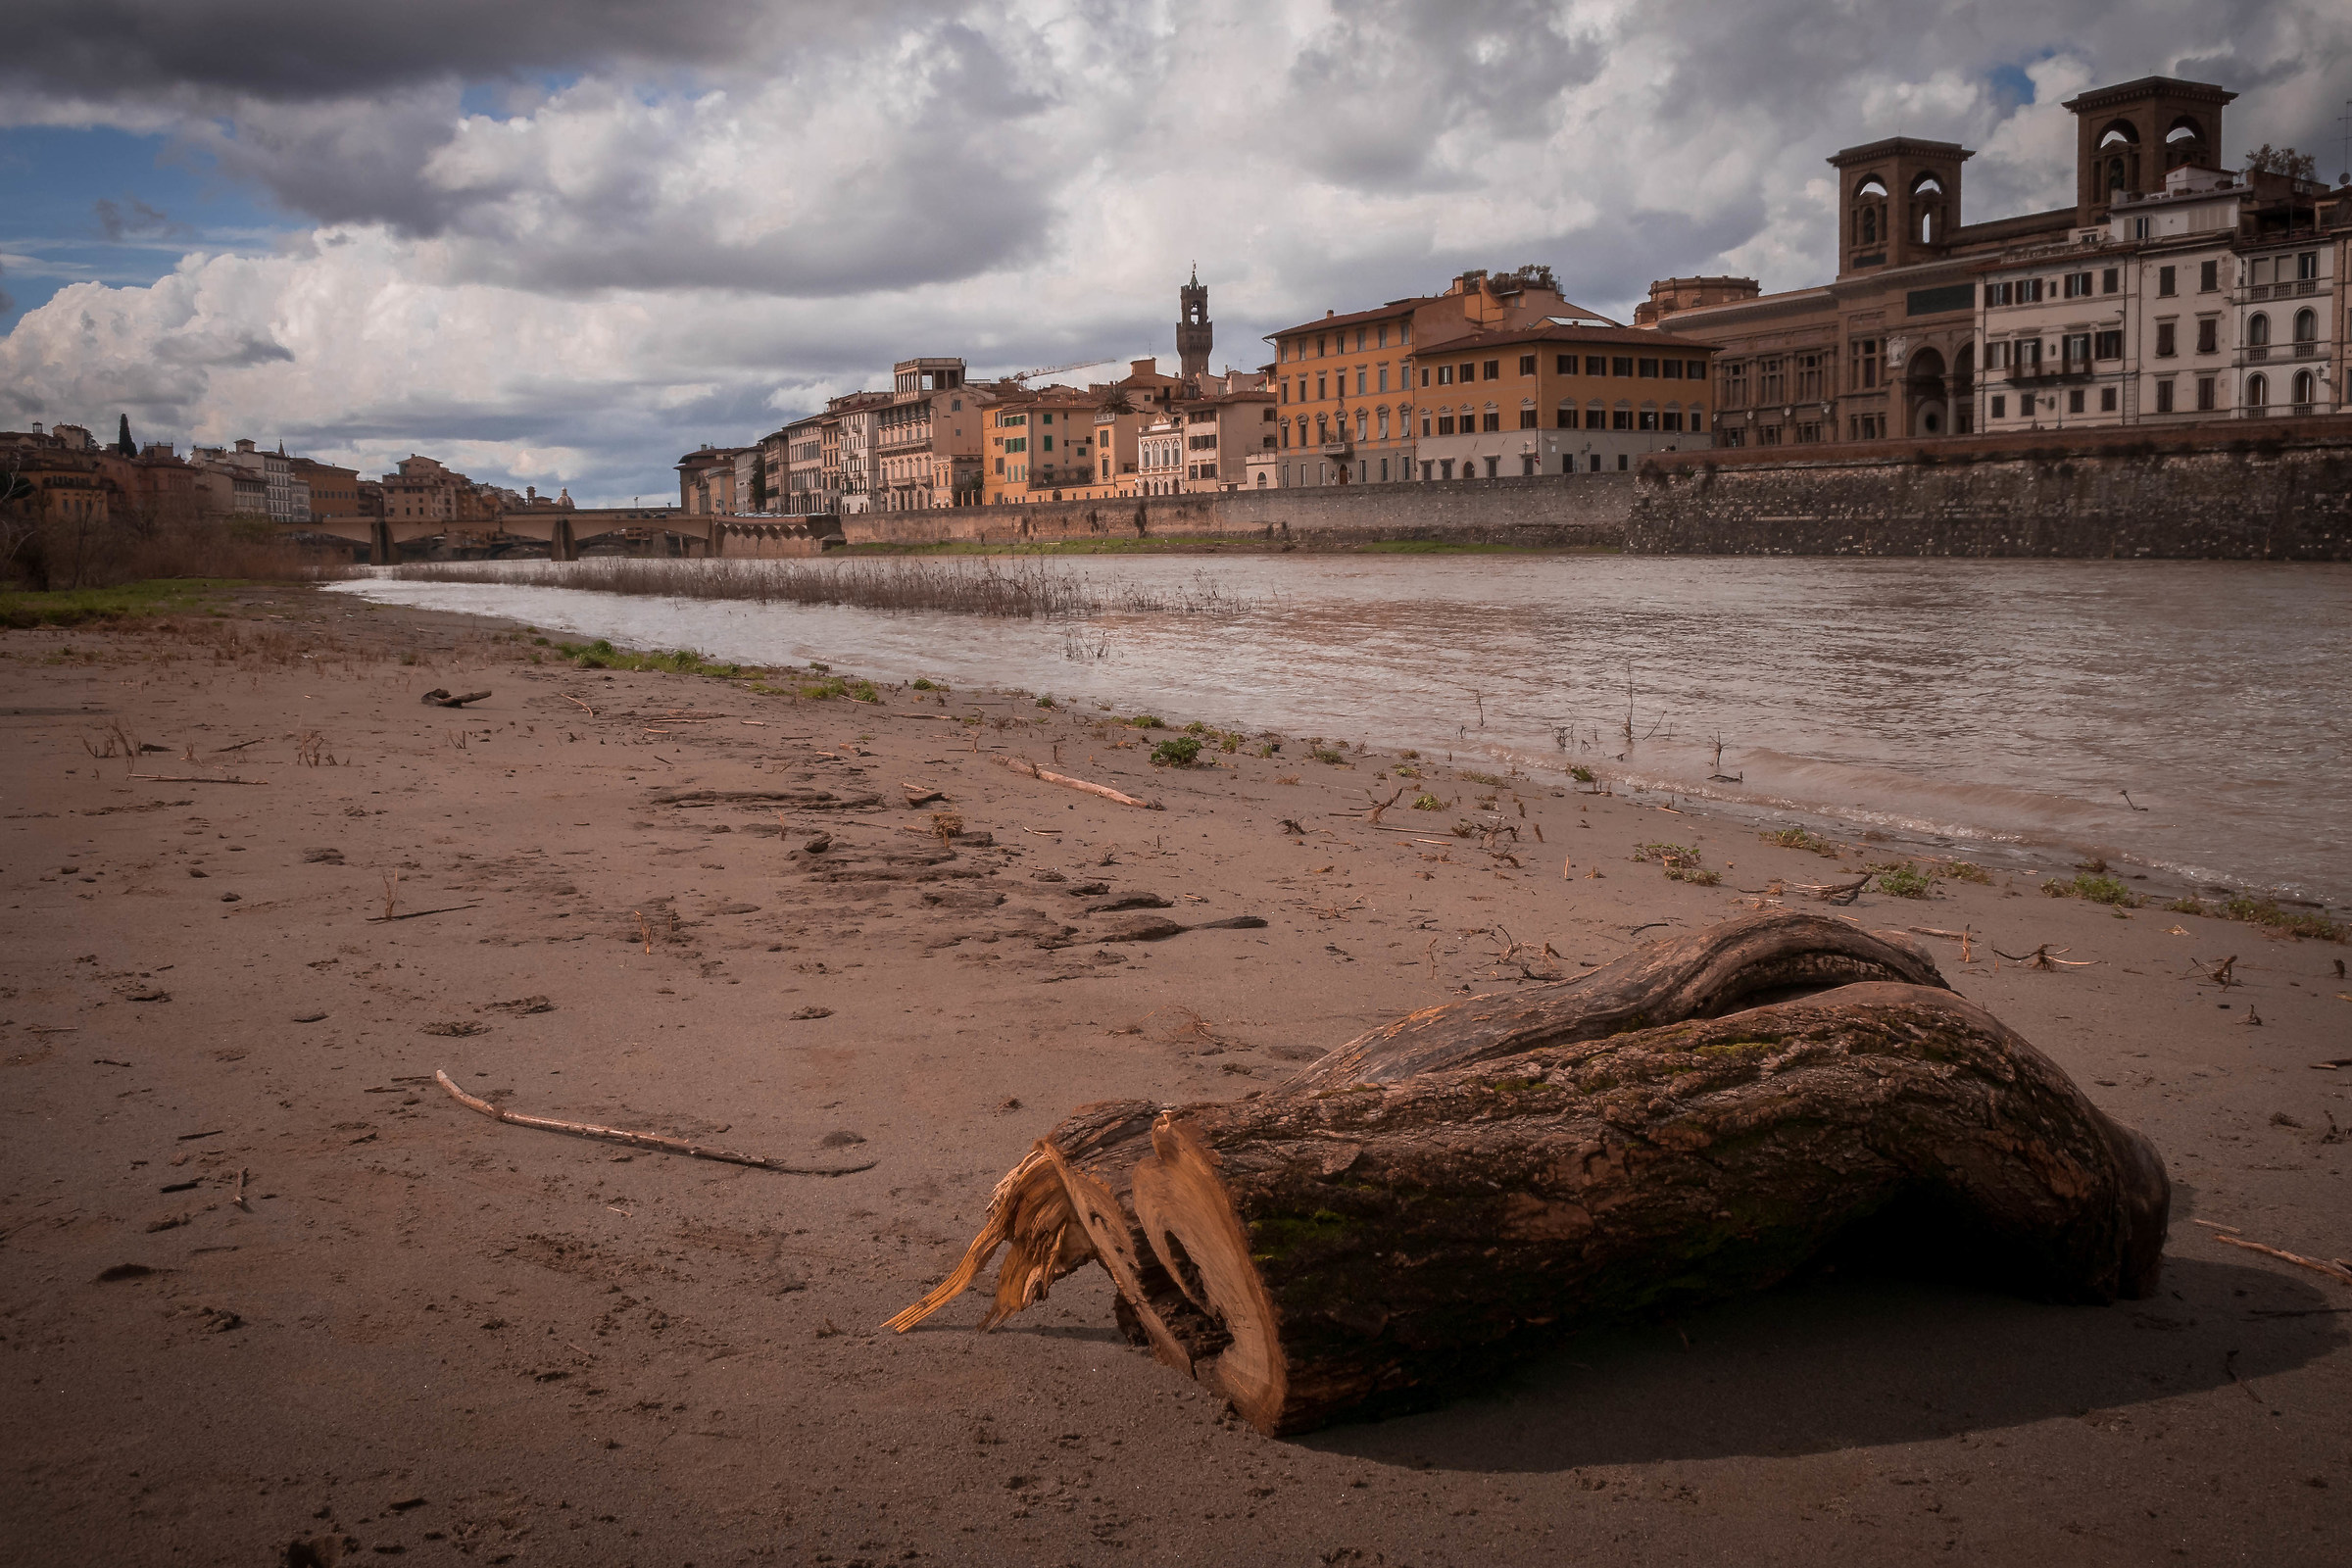 On the banks of the Arno...